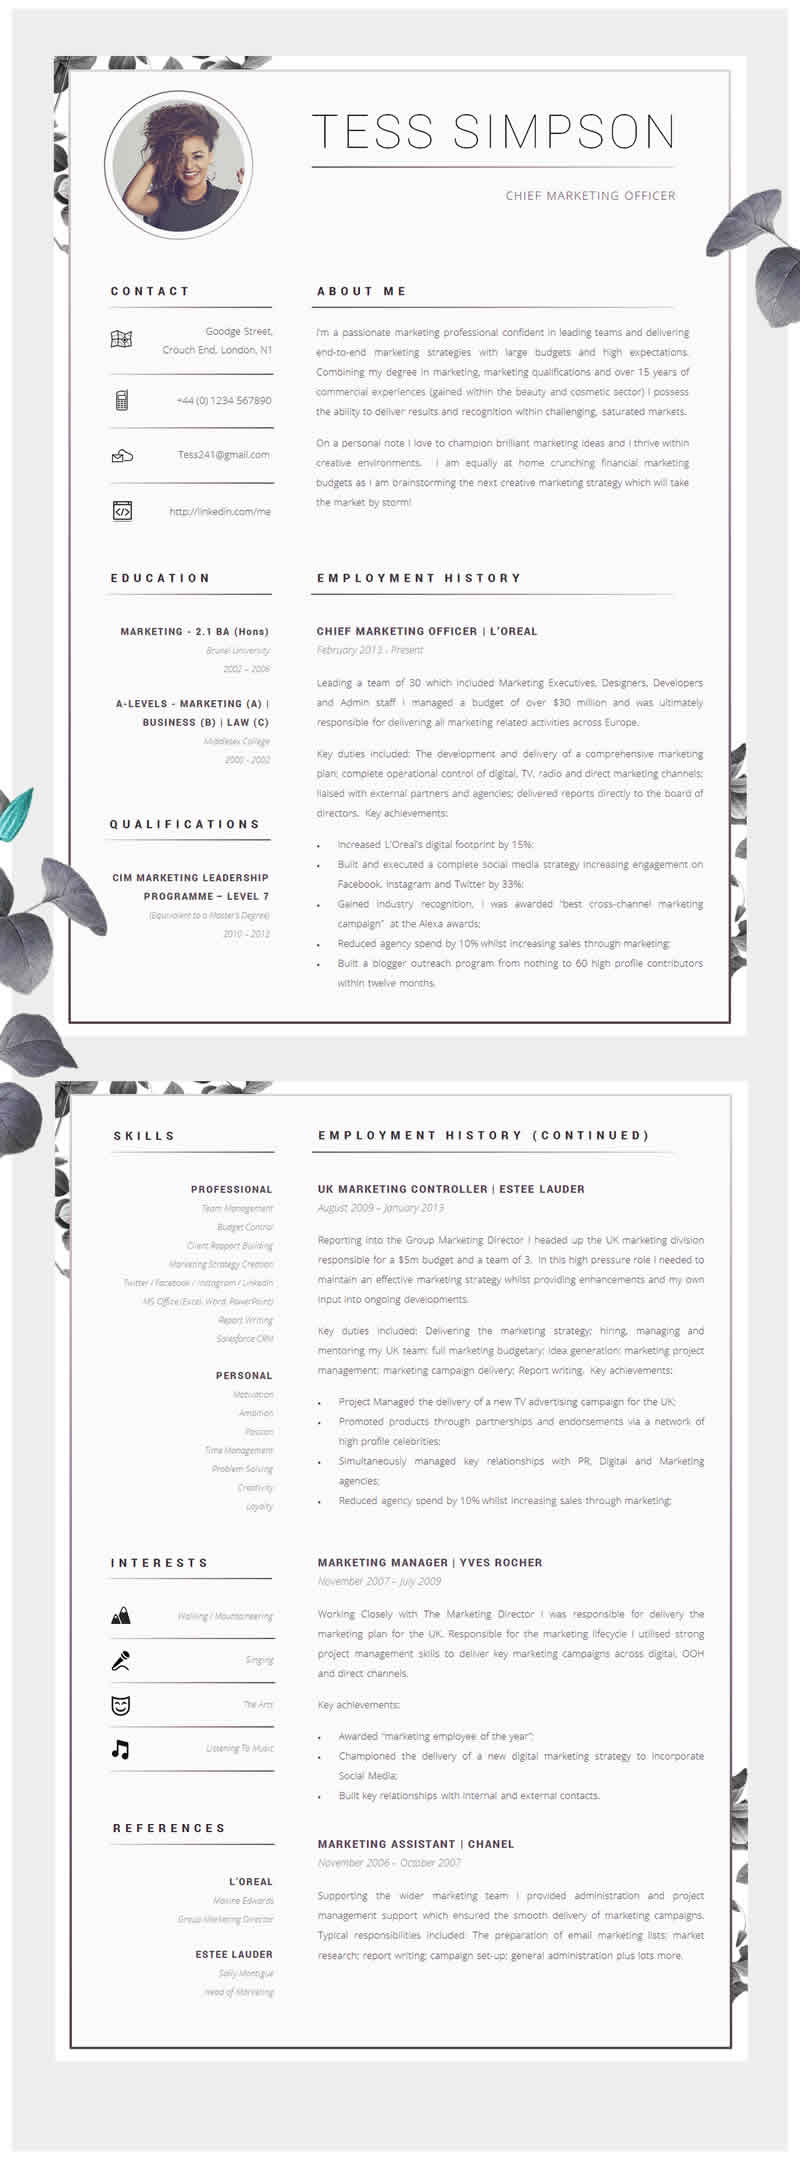 awesome examples of creative cvs resumes guru about resume design talent management Resume About Me Resume Examples